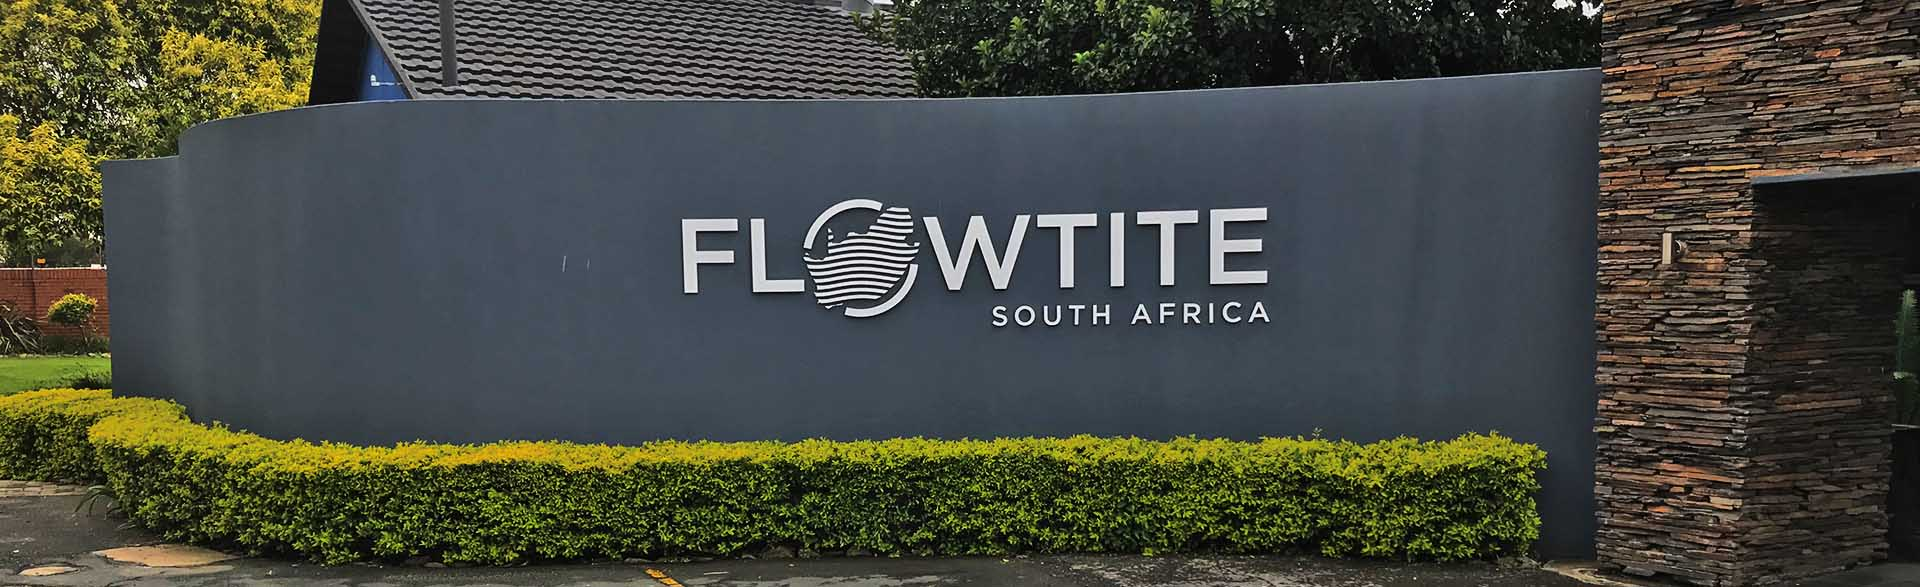 Flowtite South Africa